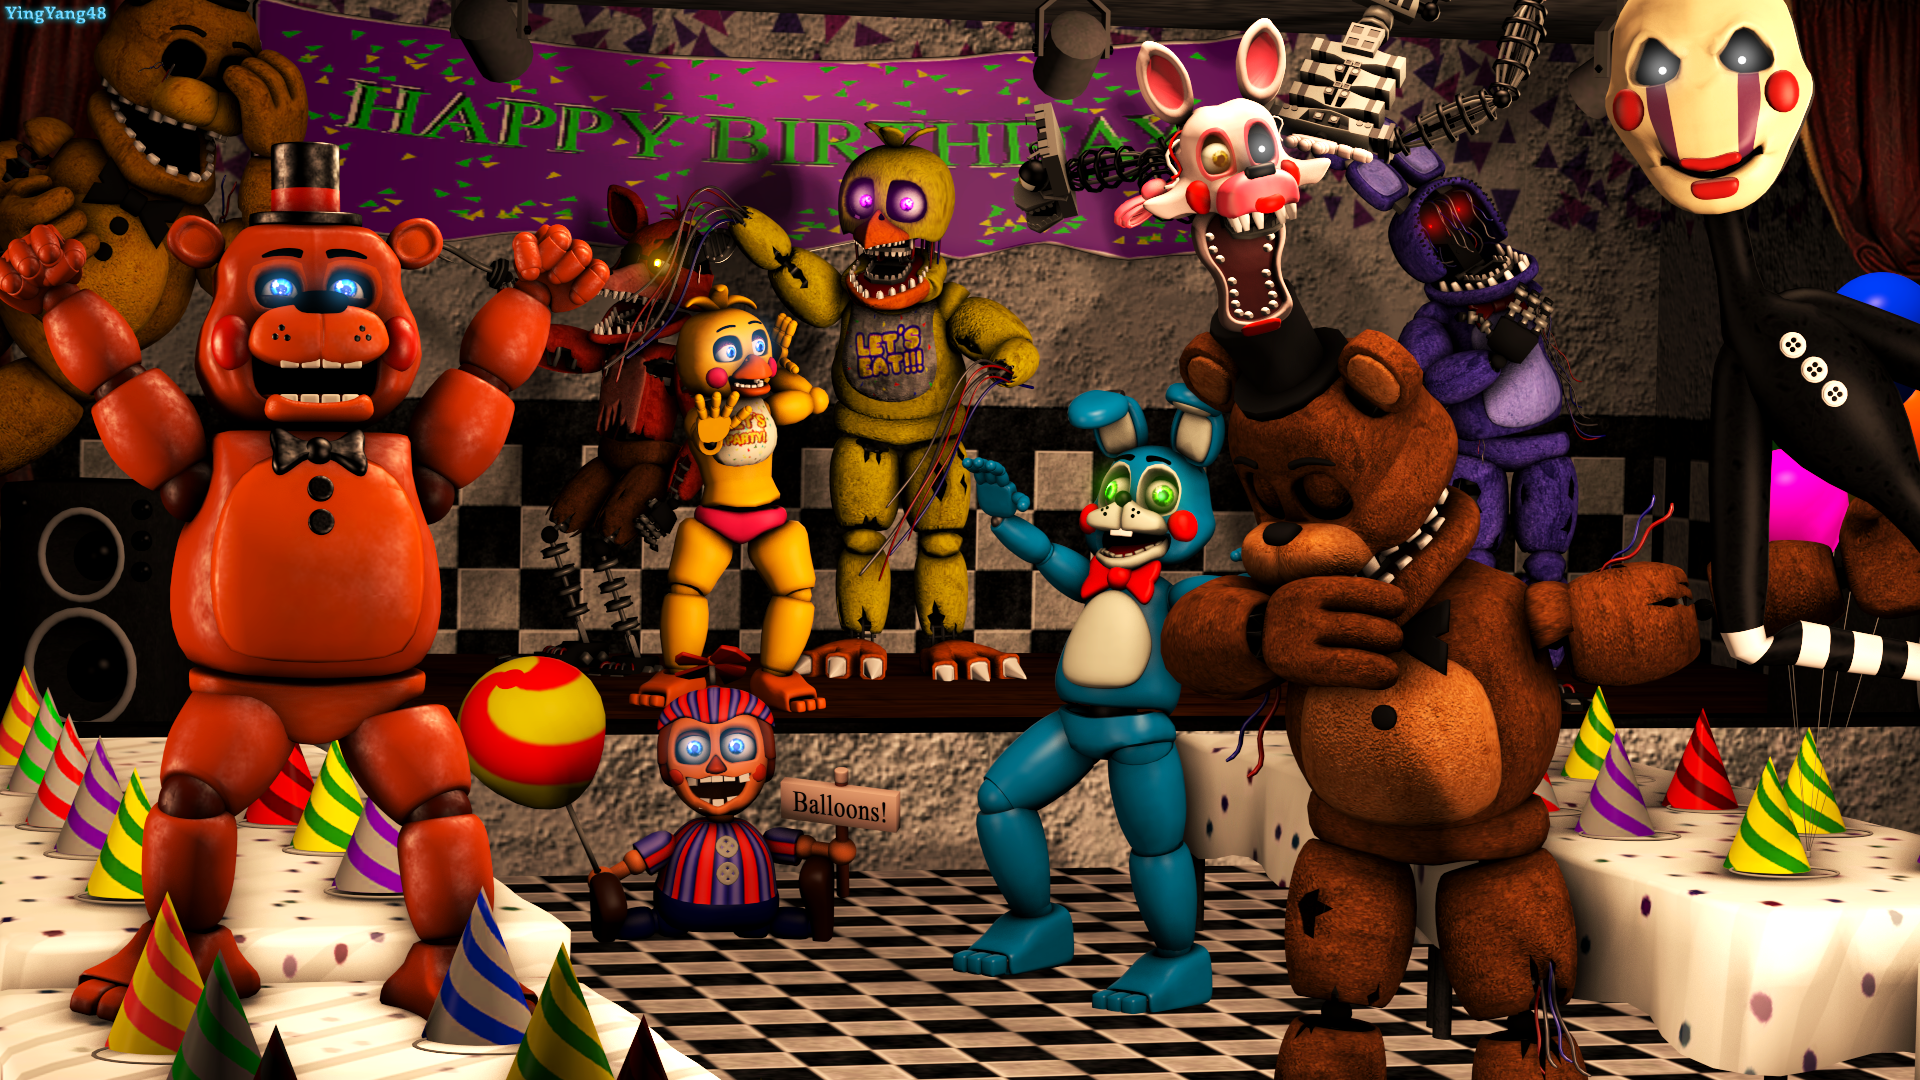 Five Nights At Freddy's 2 Fond d'écran HD | Arrière-Plan | 1920x1080 | ID:952803 - Wallpaper Abyss